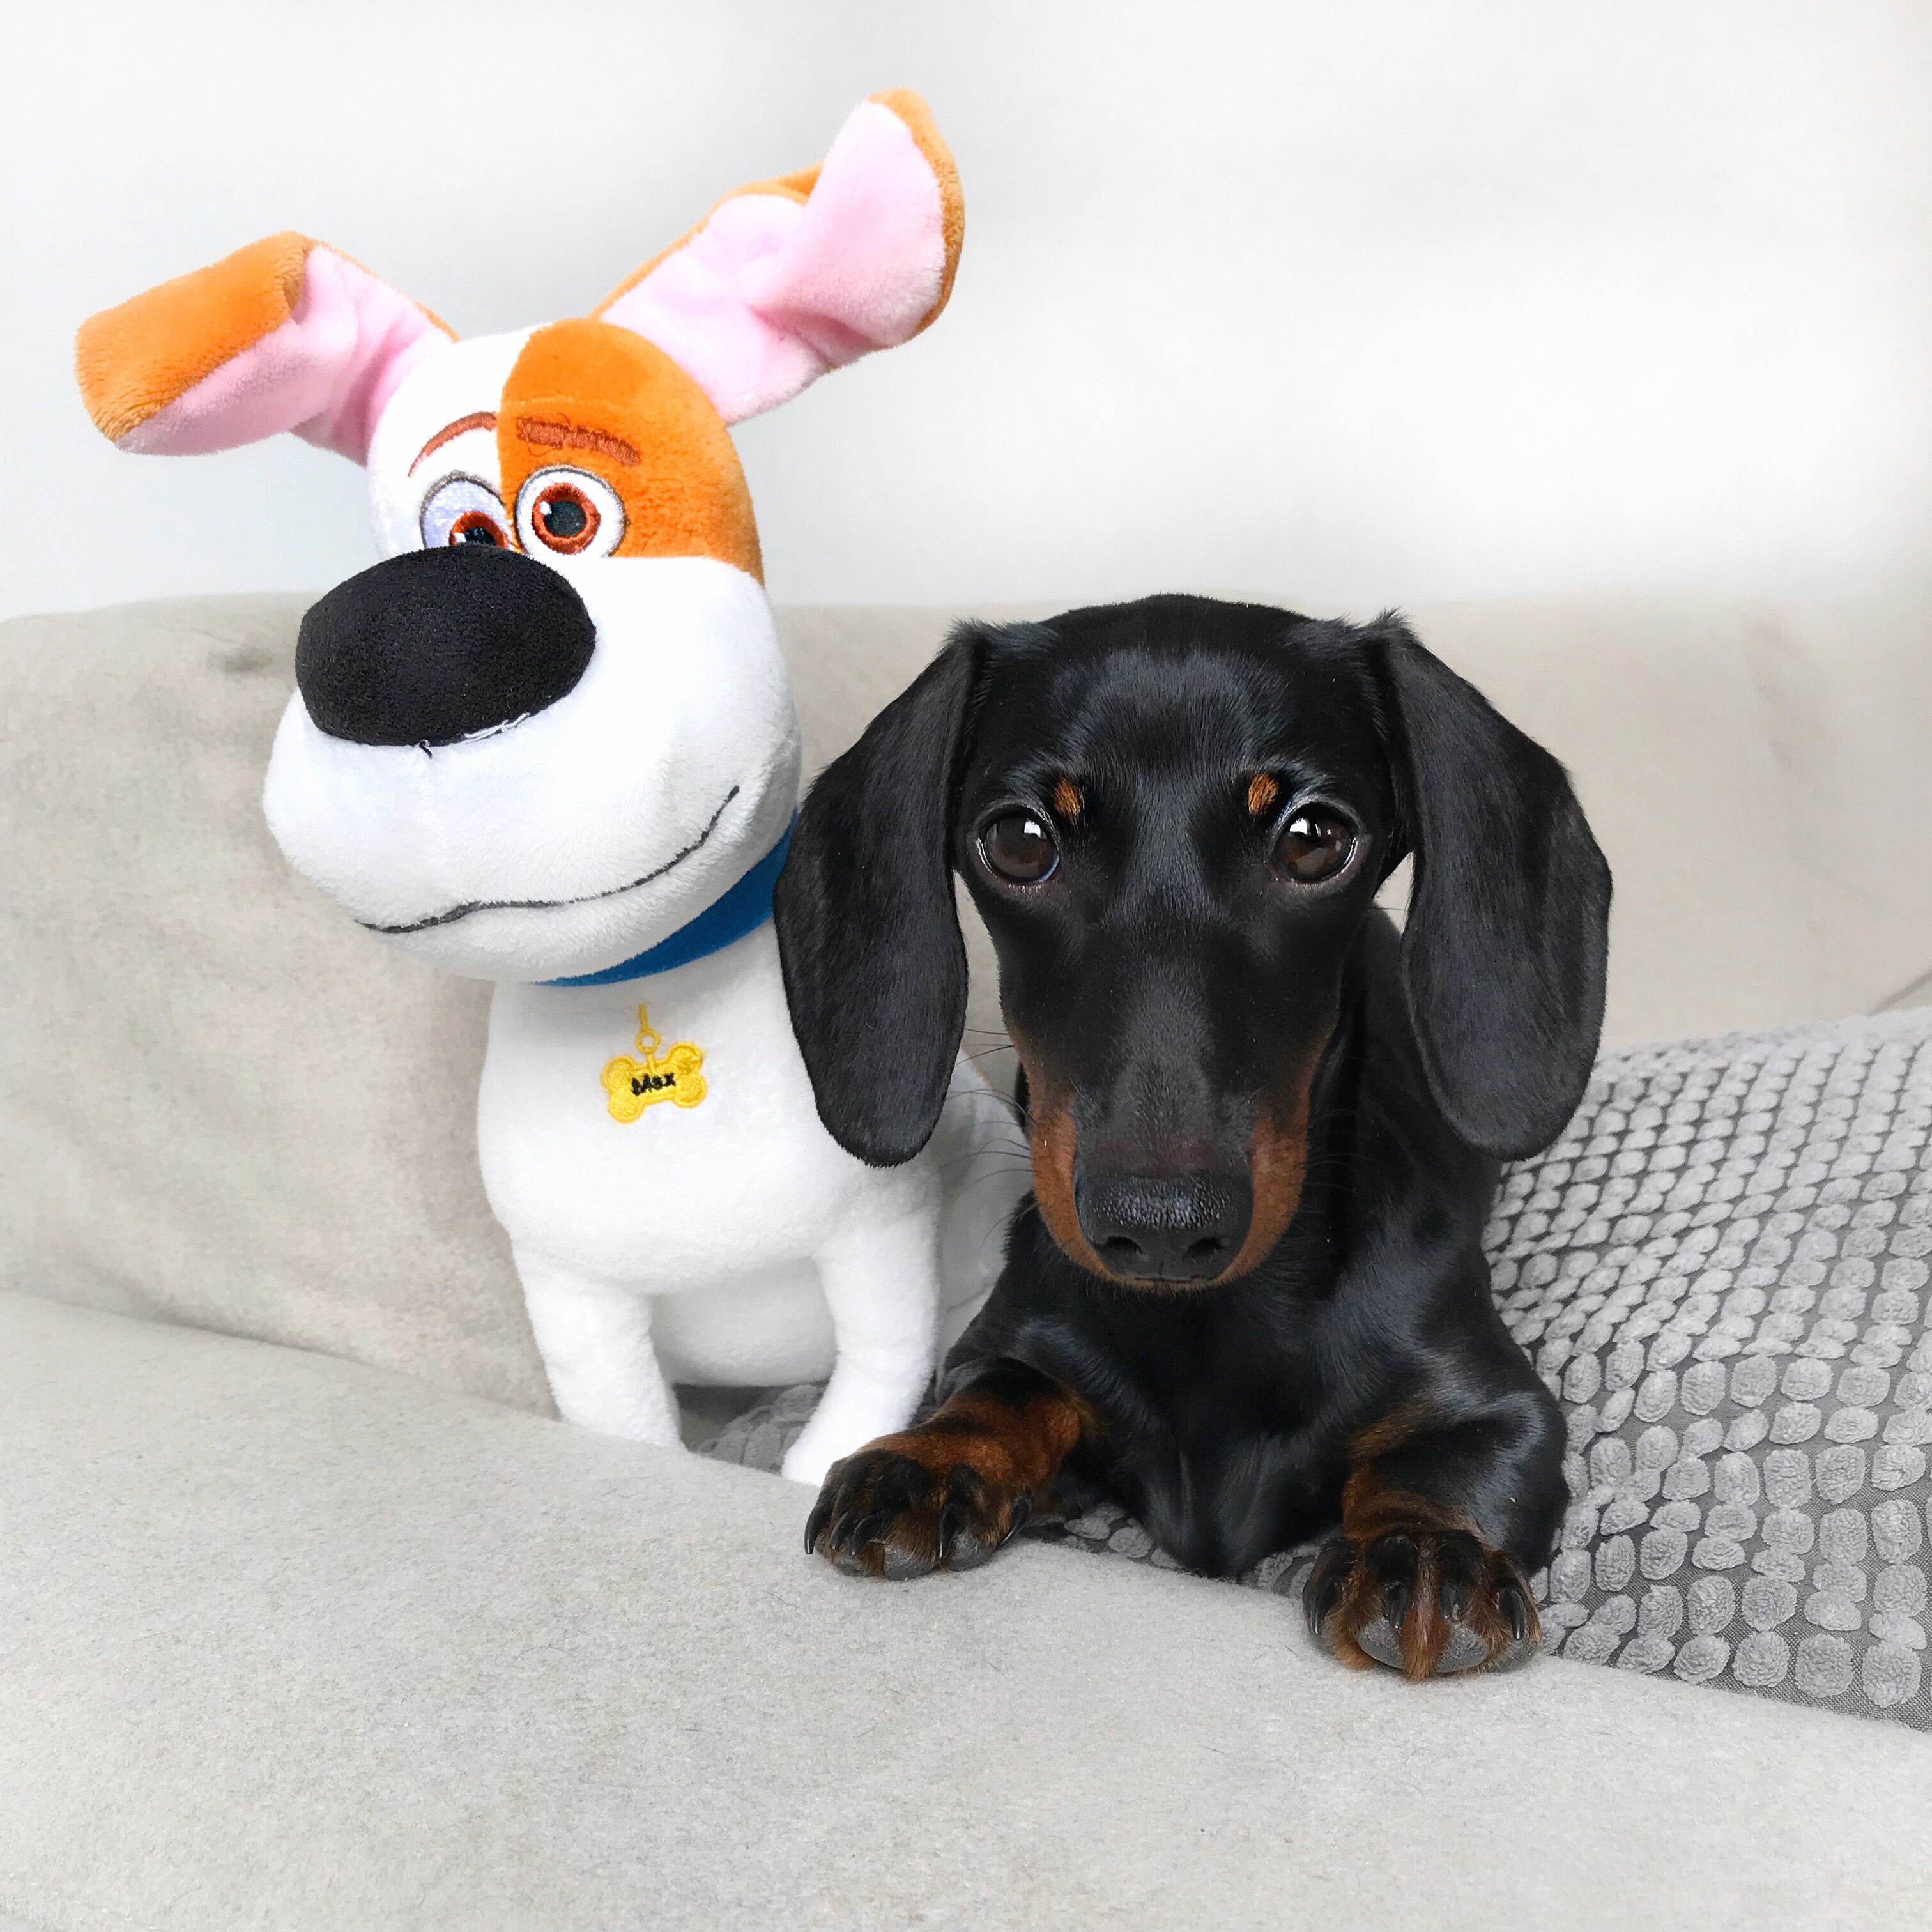 Pin By Aliza Hy On Cutest Animals Ever Doxie Puppies Dachshund